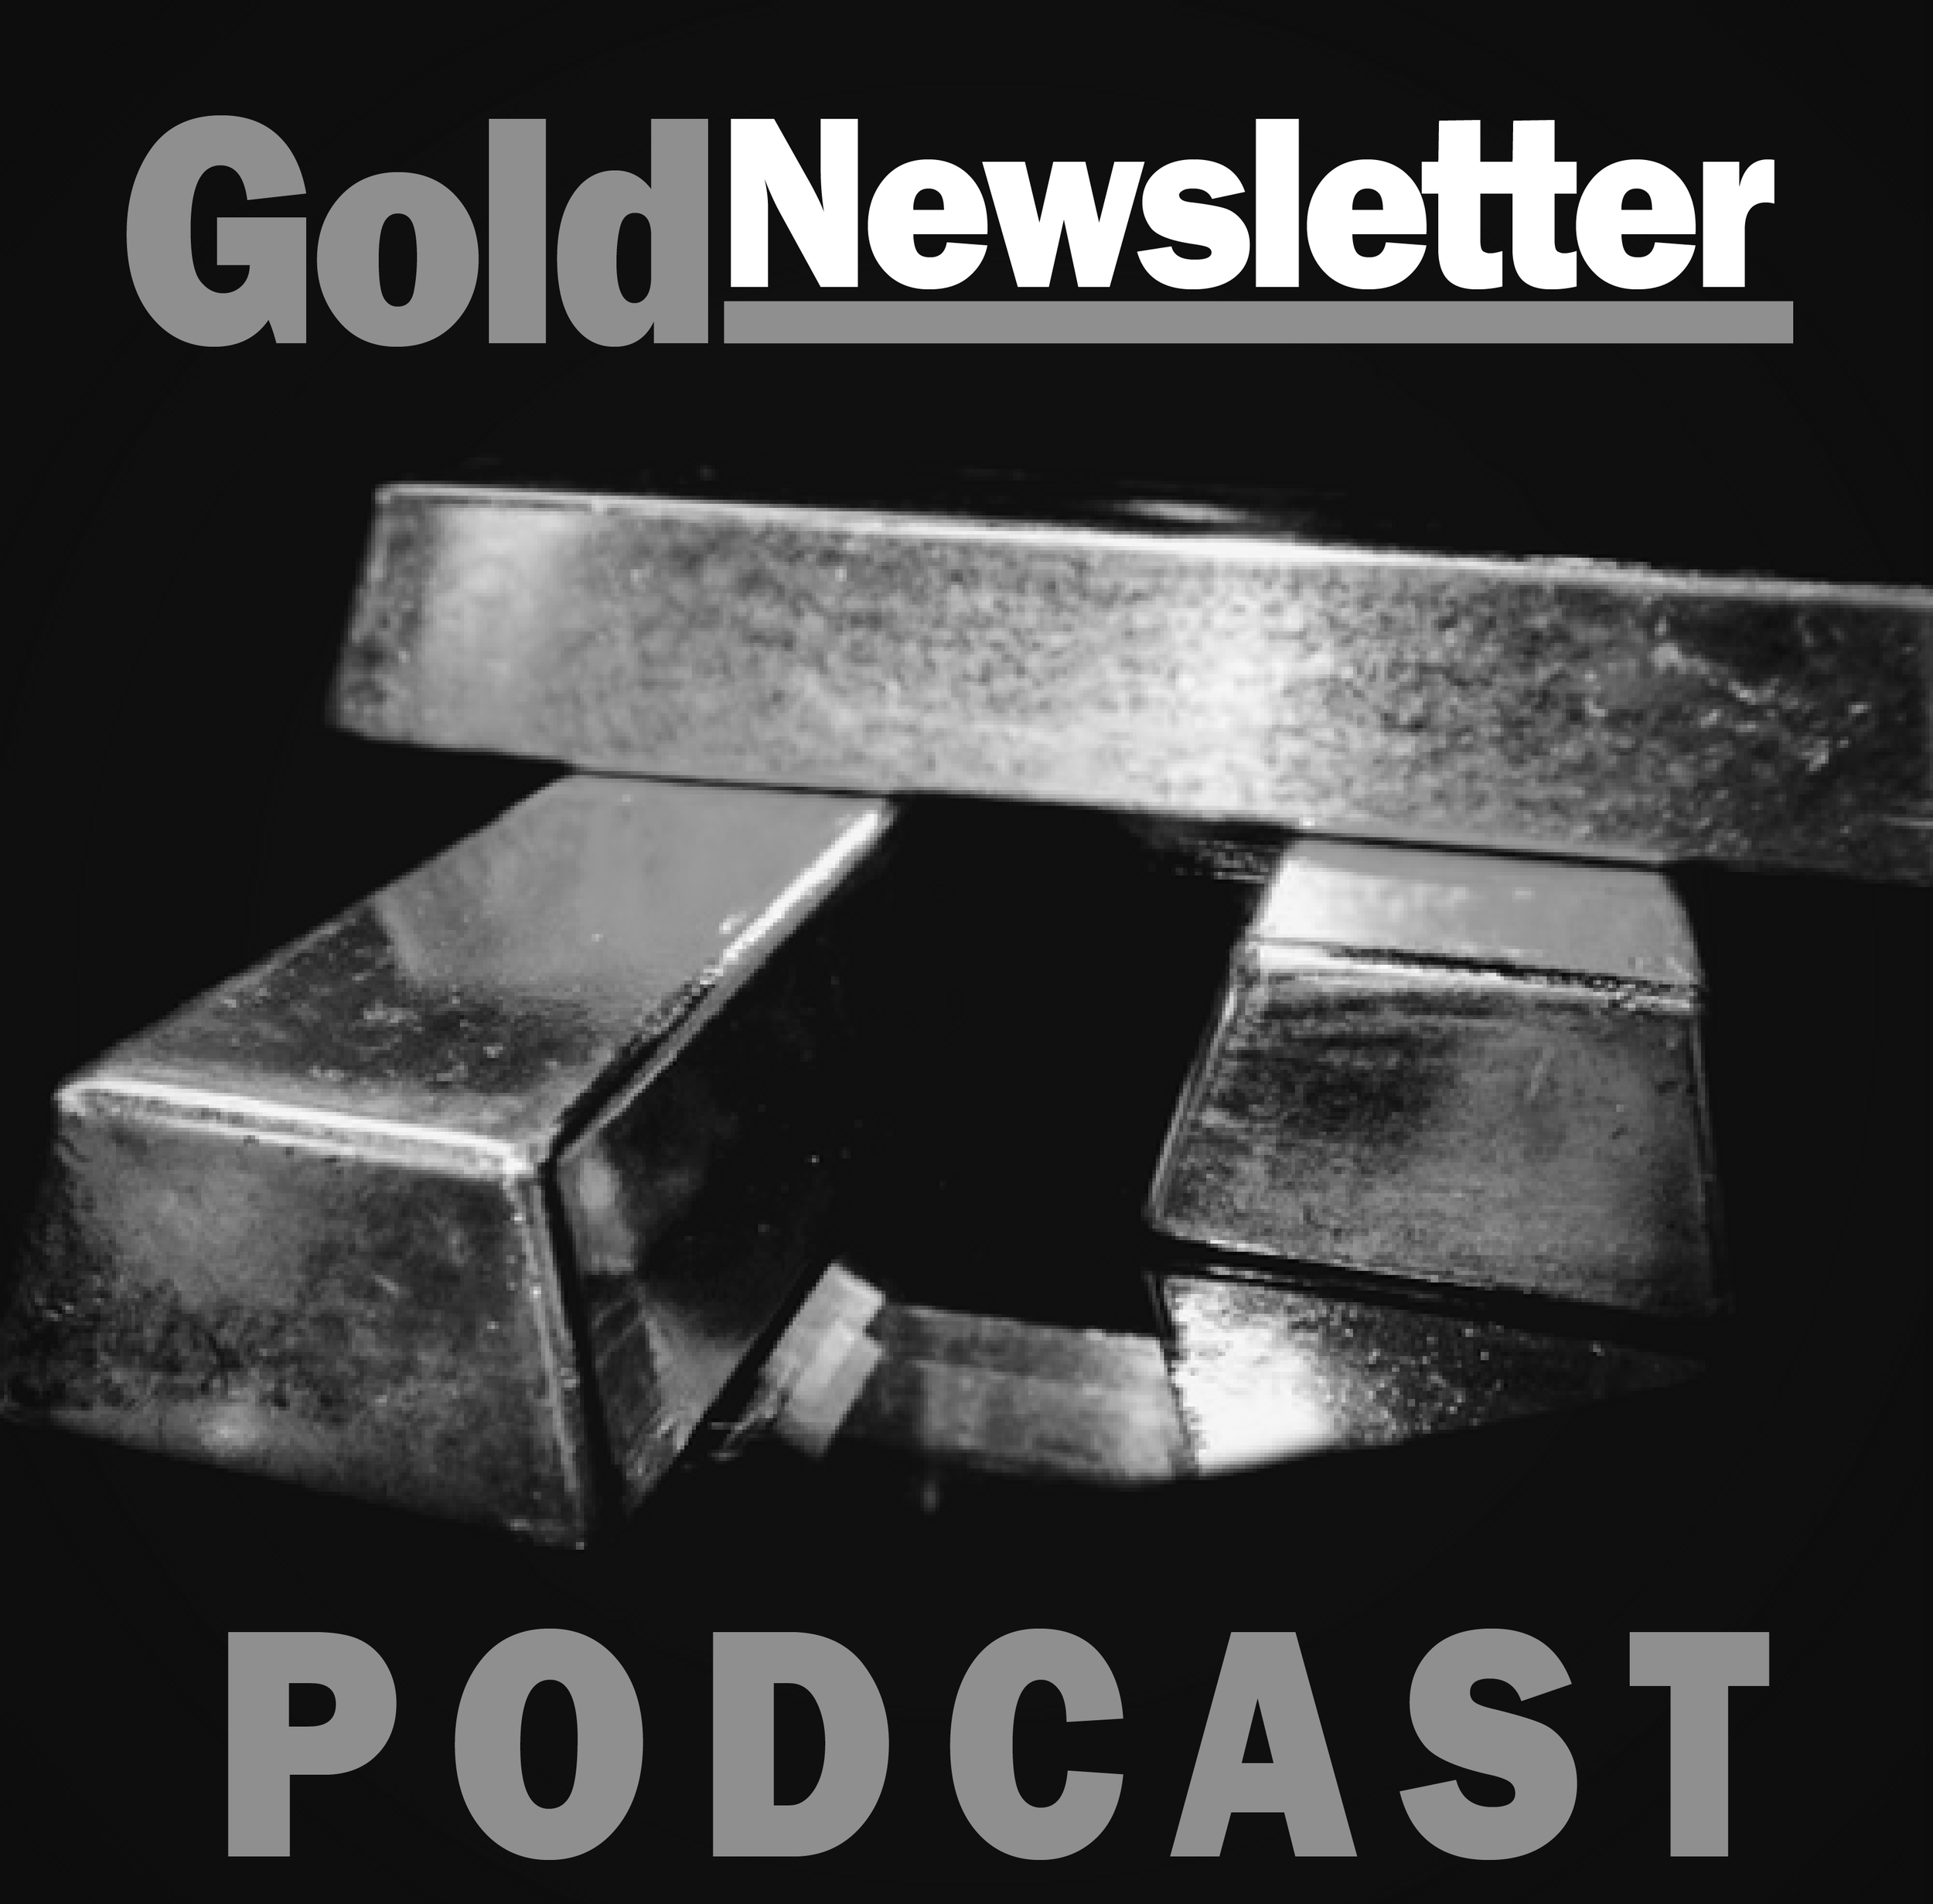 Gold-Newsletter-Podcast logo.png